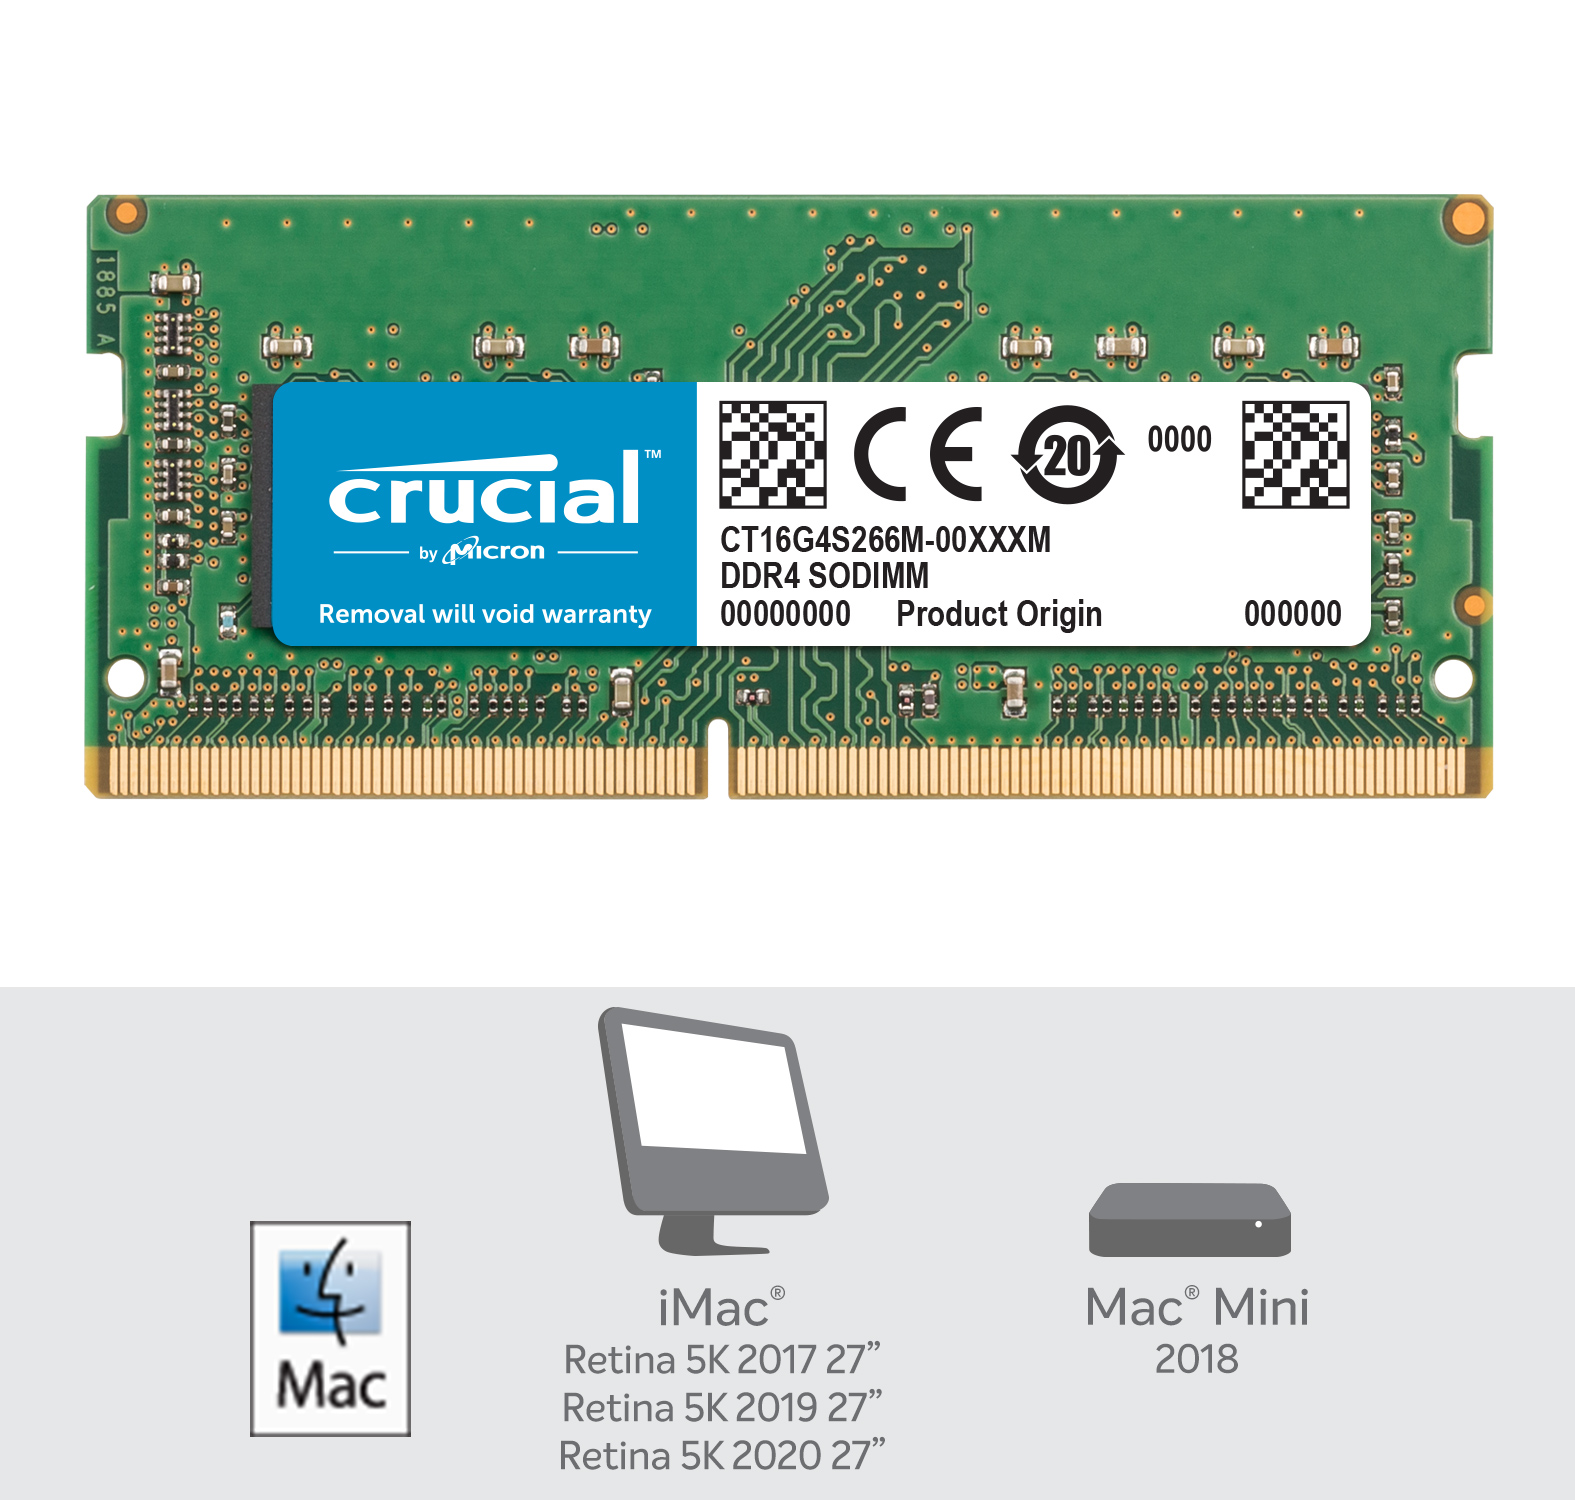 Crucial 16GB DDR4-2666 SODIMM Memory for Mac- view 2